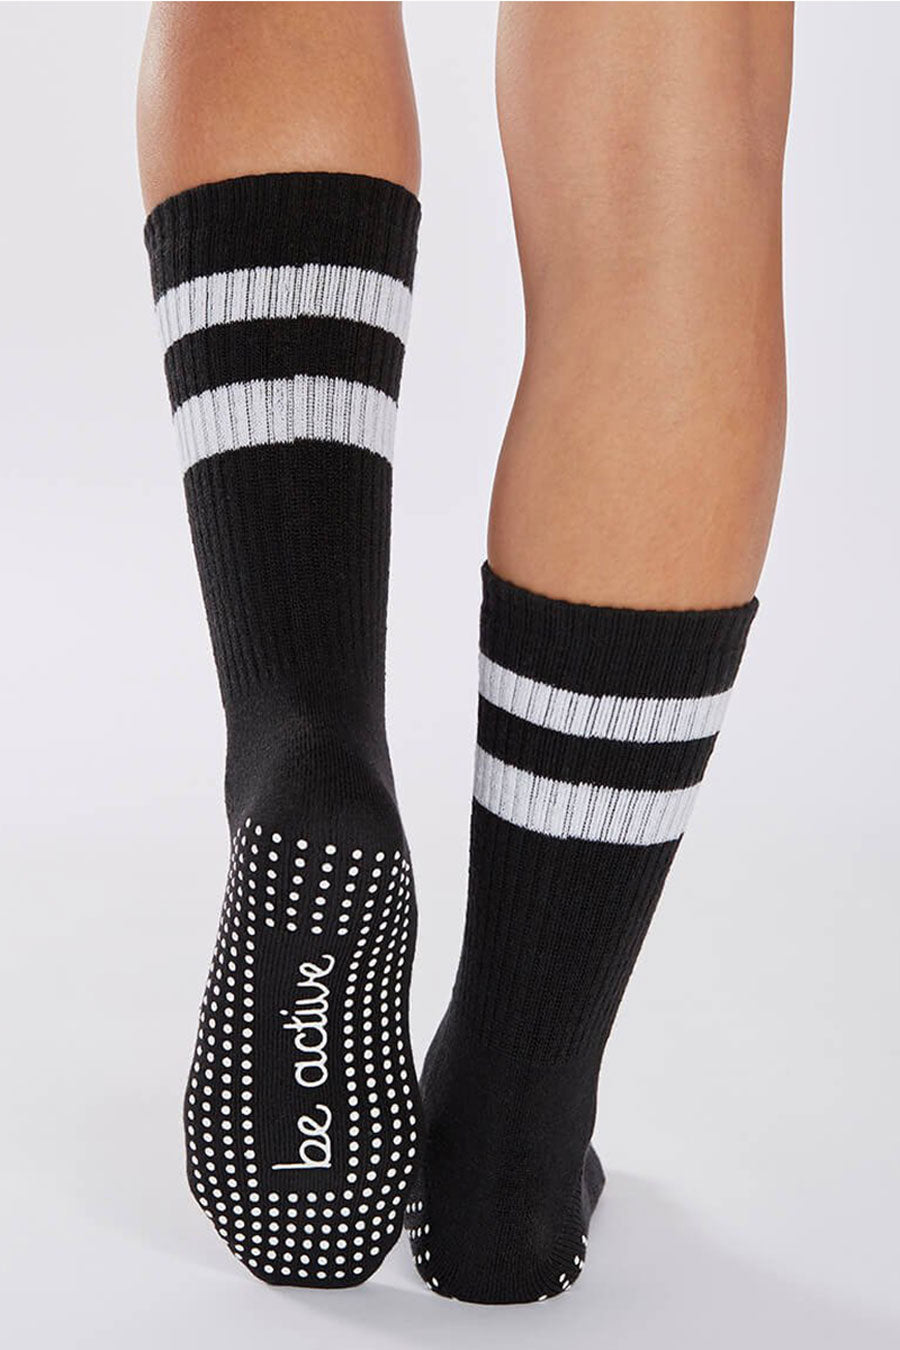 Sticky Be Socks Be Active Crew Grip Socks - Sculptique